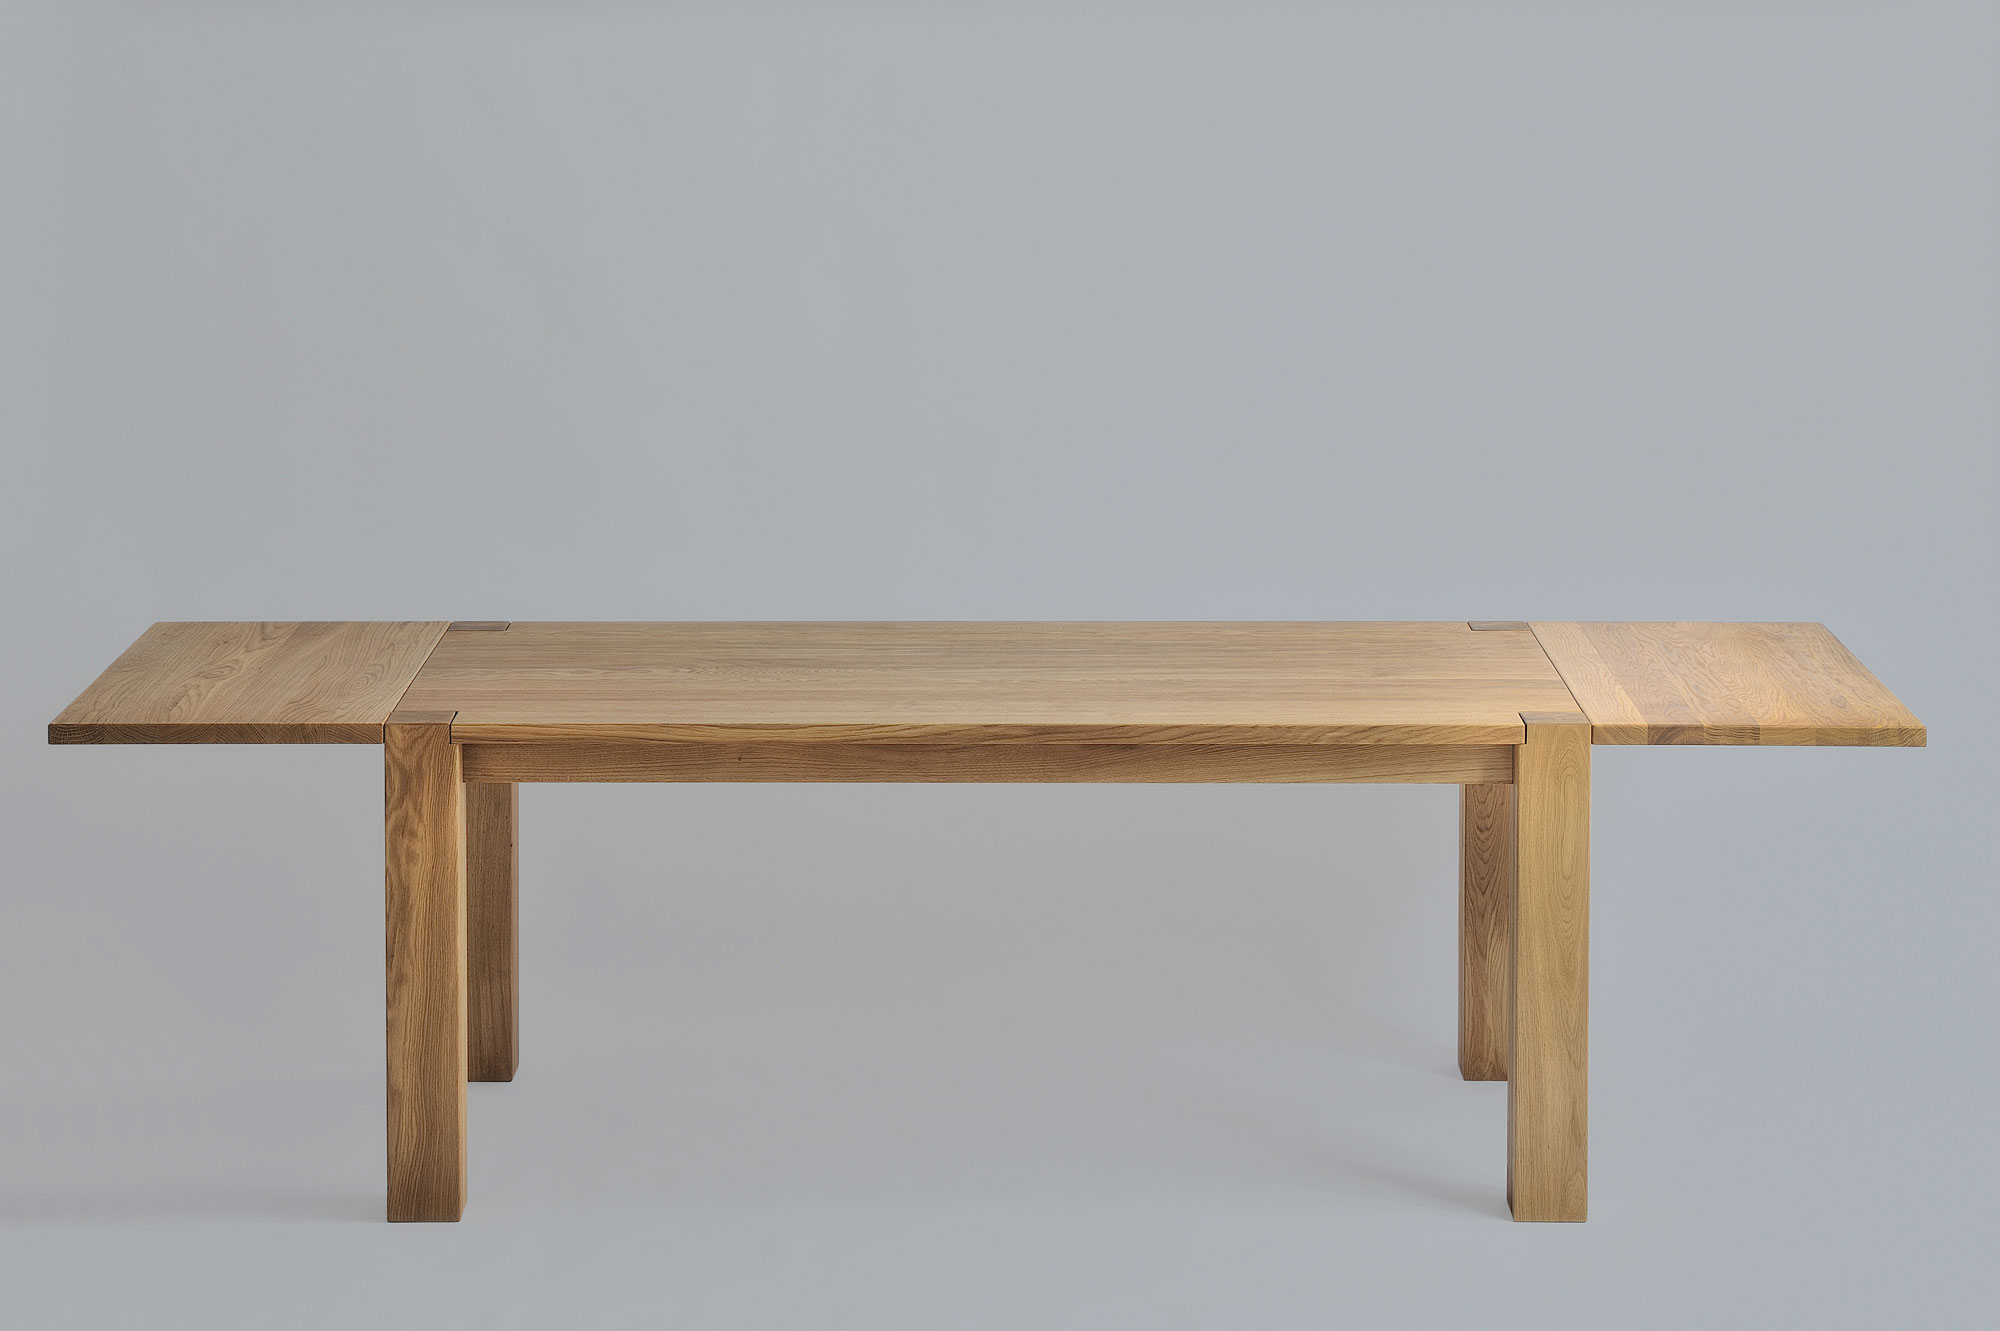 Rustic Oak Dining Table TAURUS 3 1344s custom made in solid wood by vitamin design